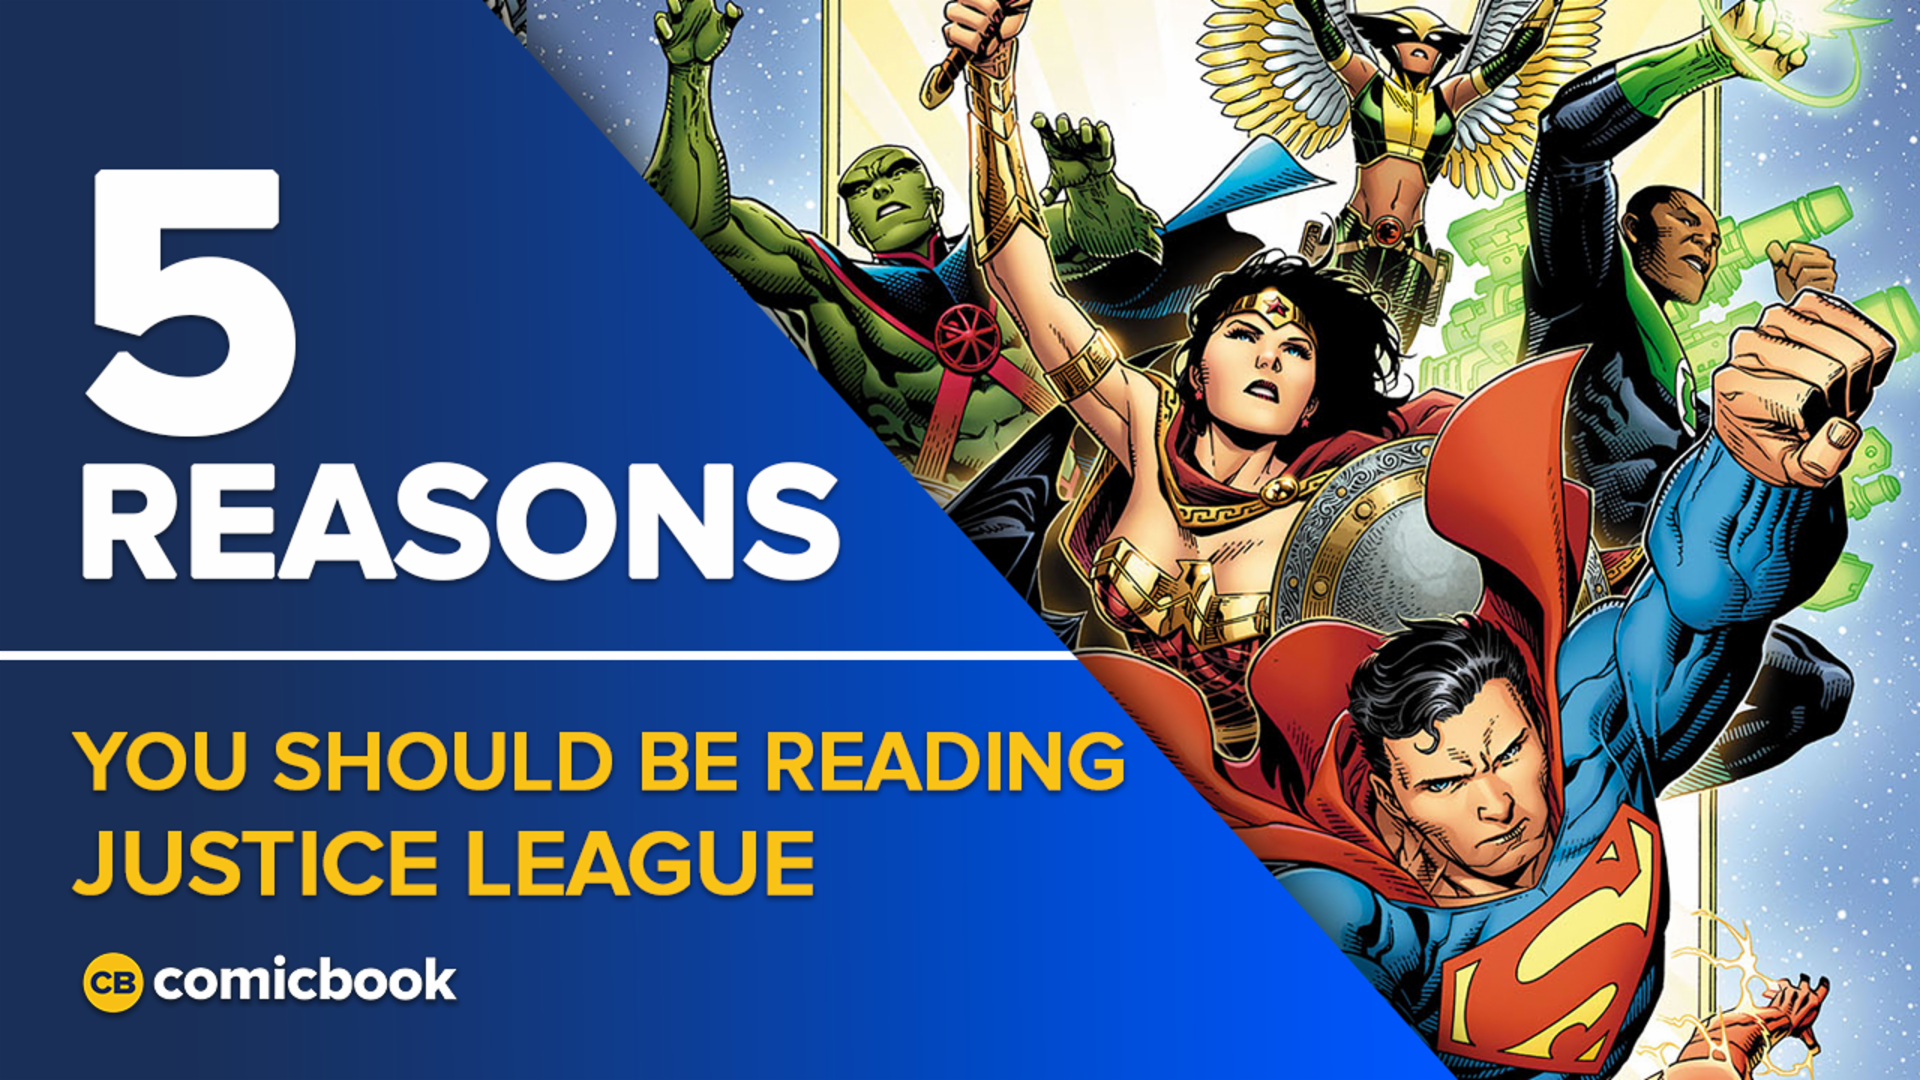 5 Reasons You Should Be Reading Justice League screen capture